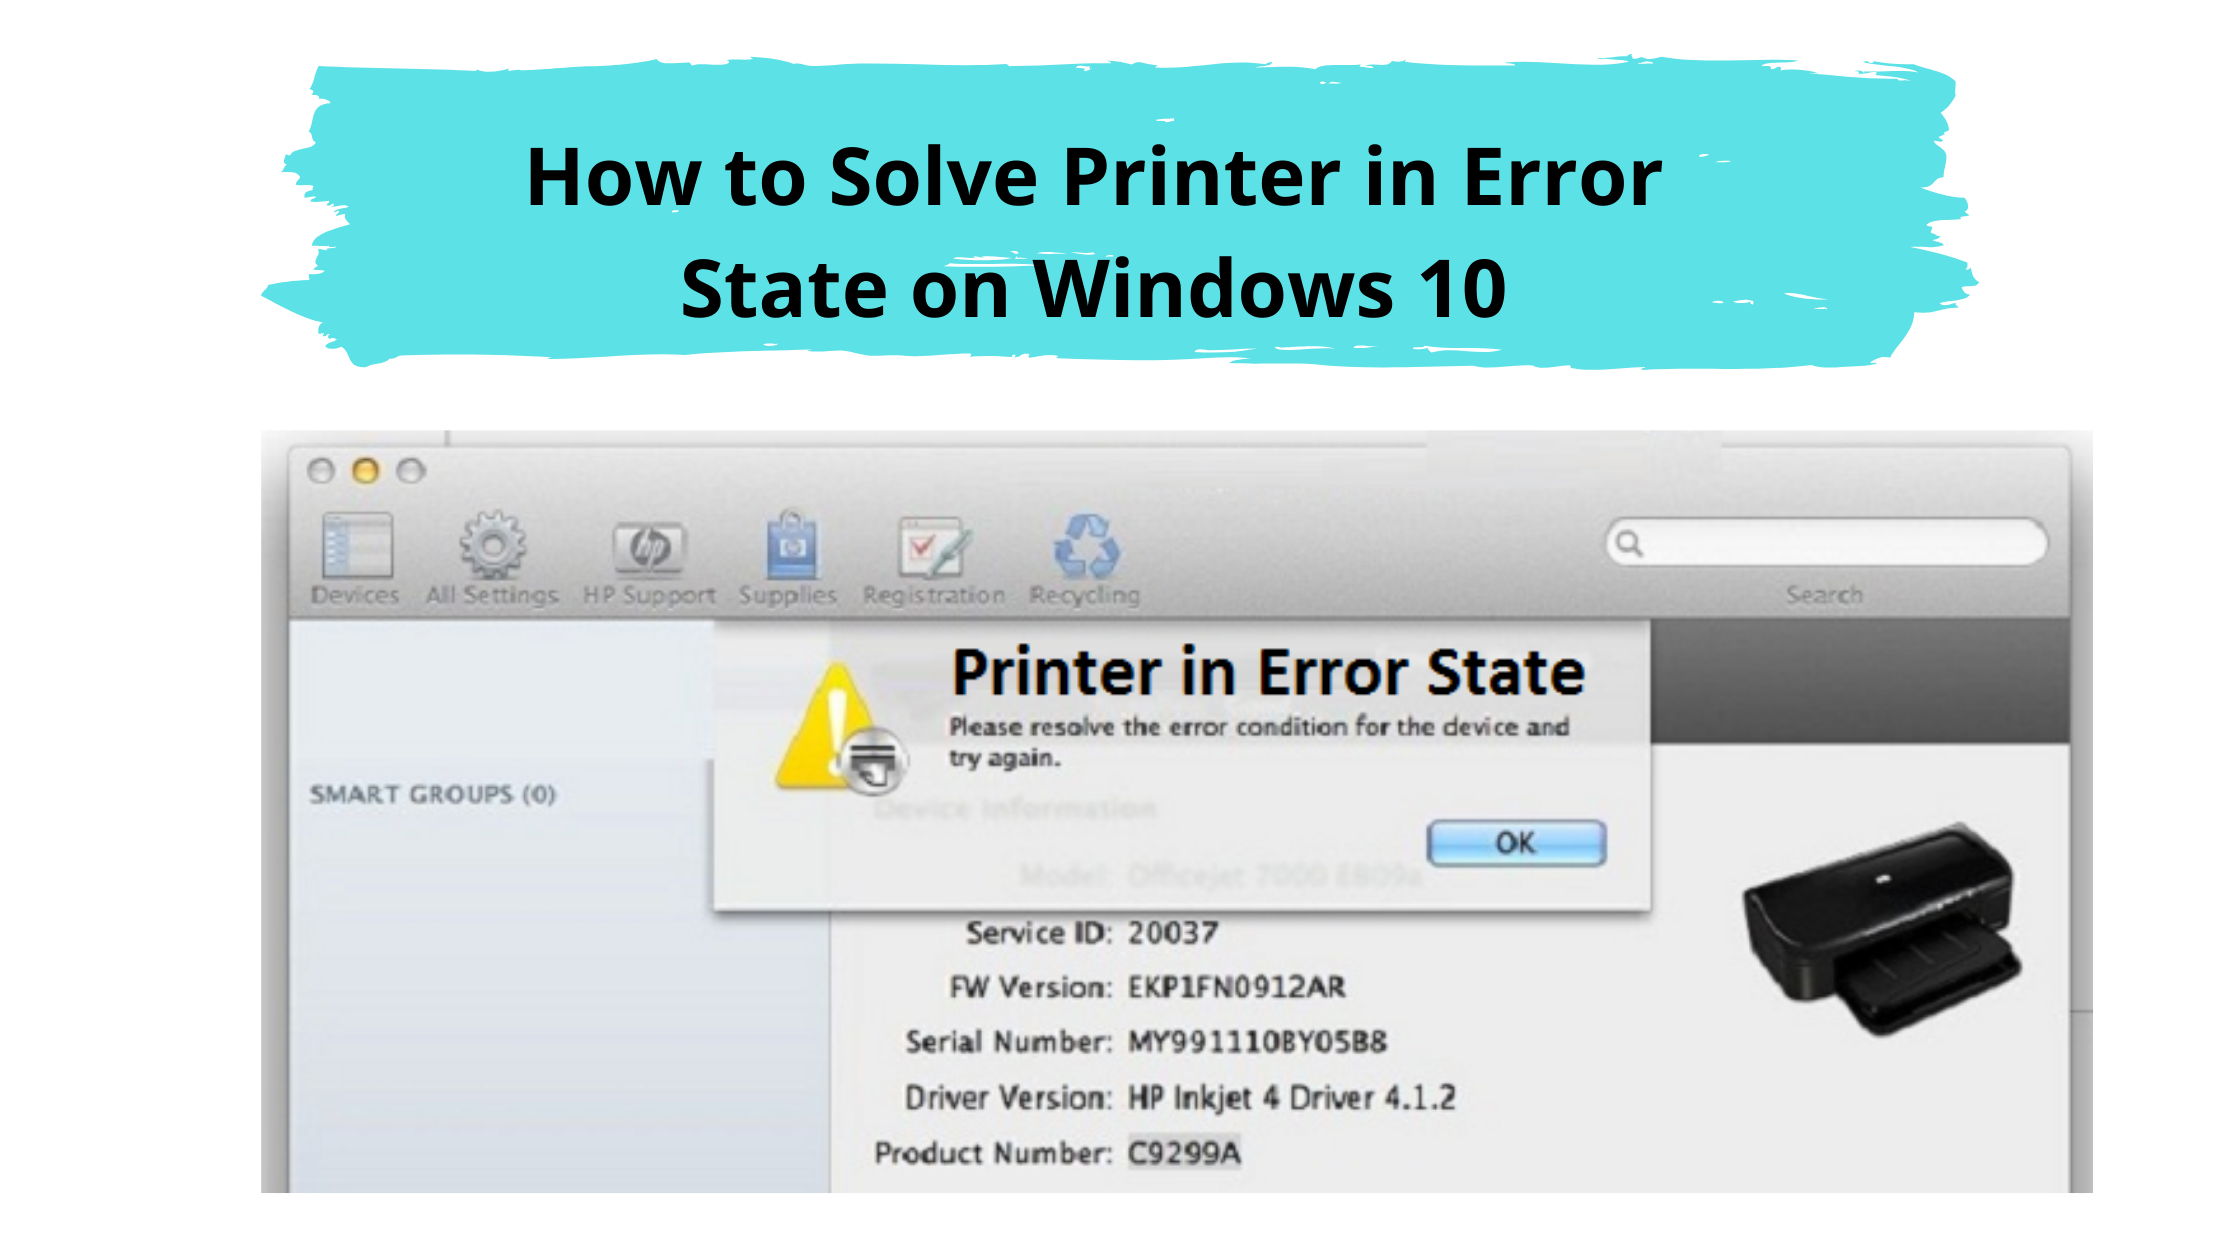 How to Solve Printer in Error State on Windows 10